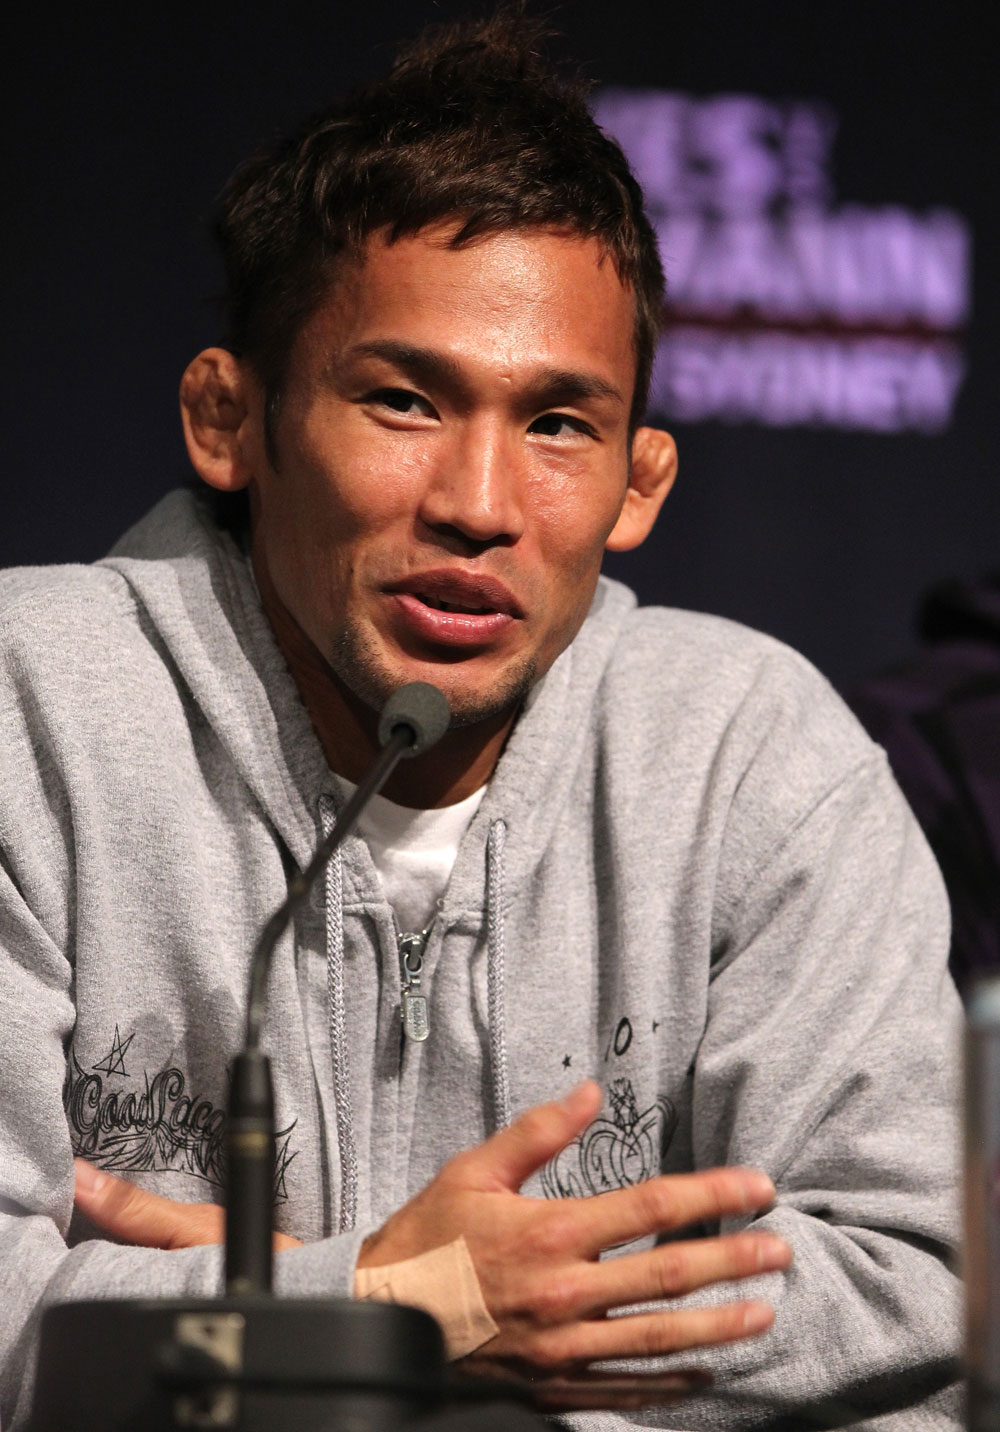 SYDNEY, AUSTRALIA - MARCH 01:  Yashuhiro Urushitani attends the UFC on FX press conference at the Star Casino on March 1, 2012 in Sydney, Australia.  (Photo by Josh Hedges/Zuffa LLC/Zuffa LLC via Getty Images) *** Local Caption *** Yashuhiro Urushitani